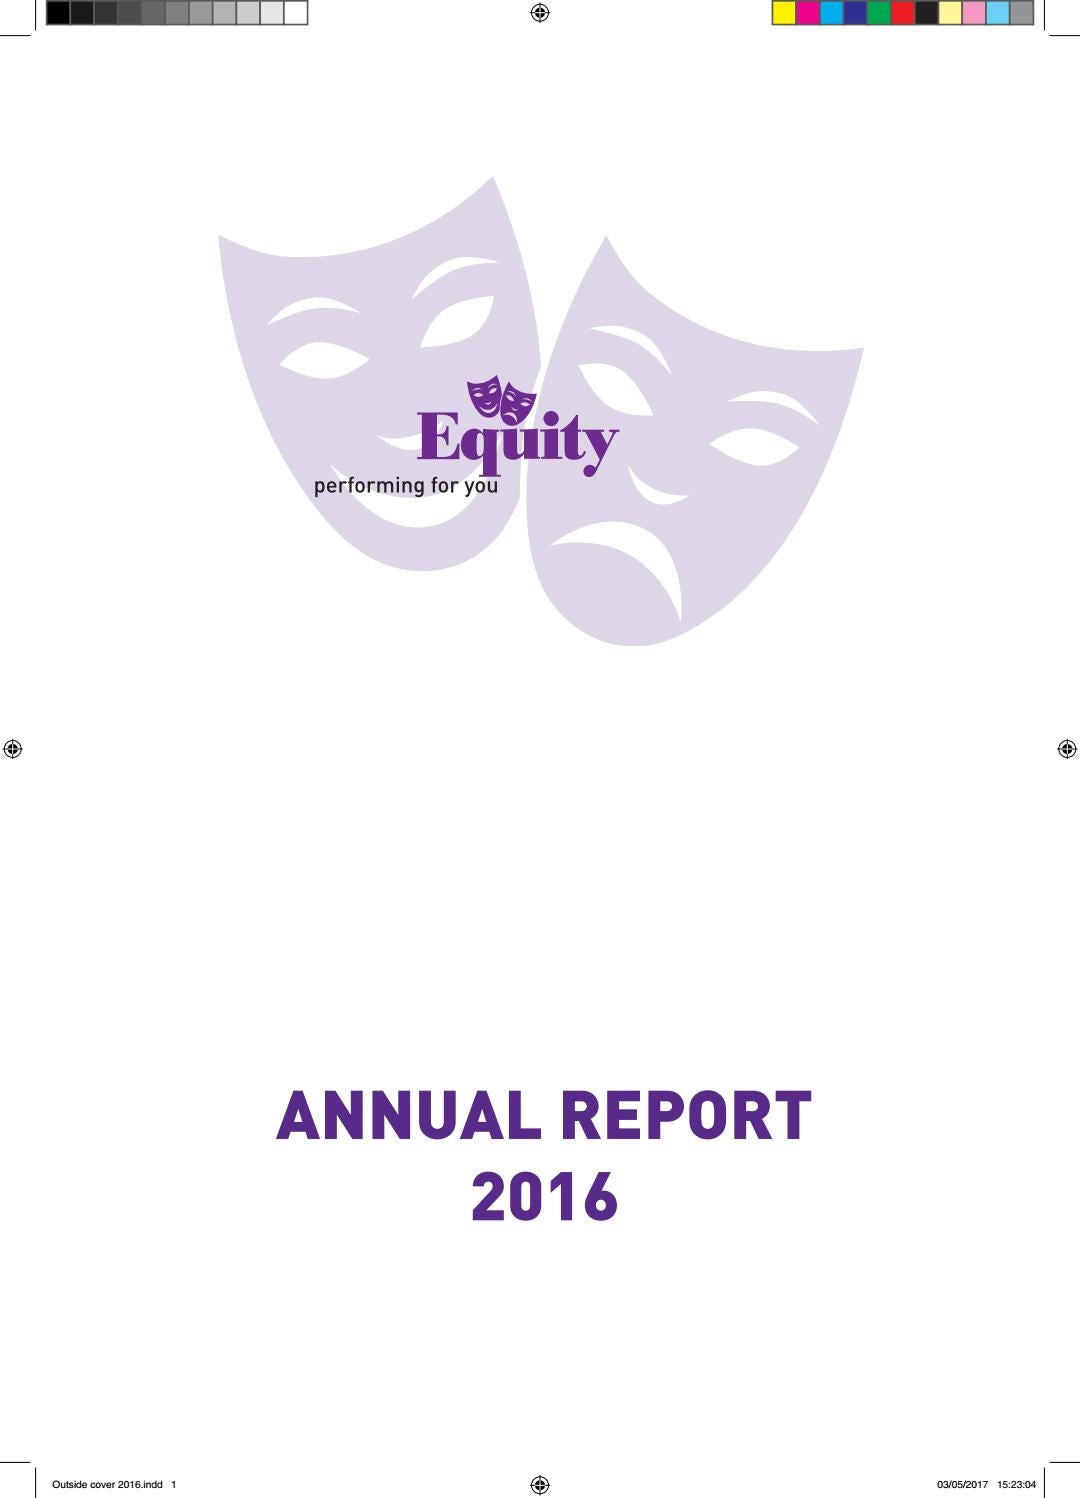 18d25a07a1ae 2016 EquityUK Annual Report by Caron Lyon - issuu